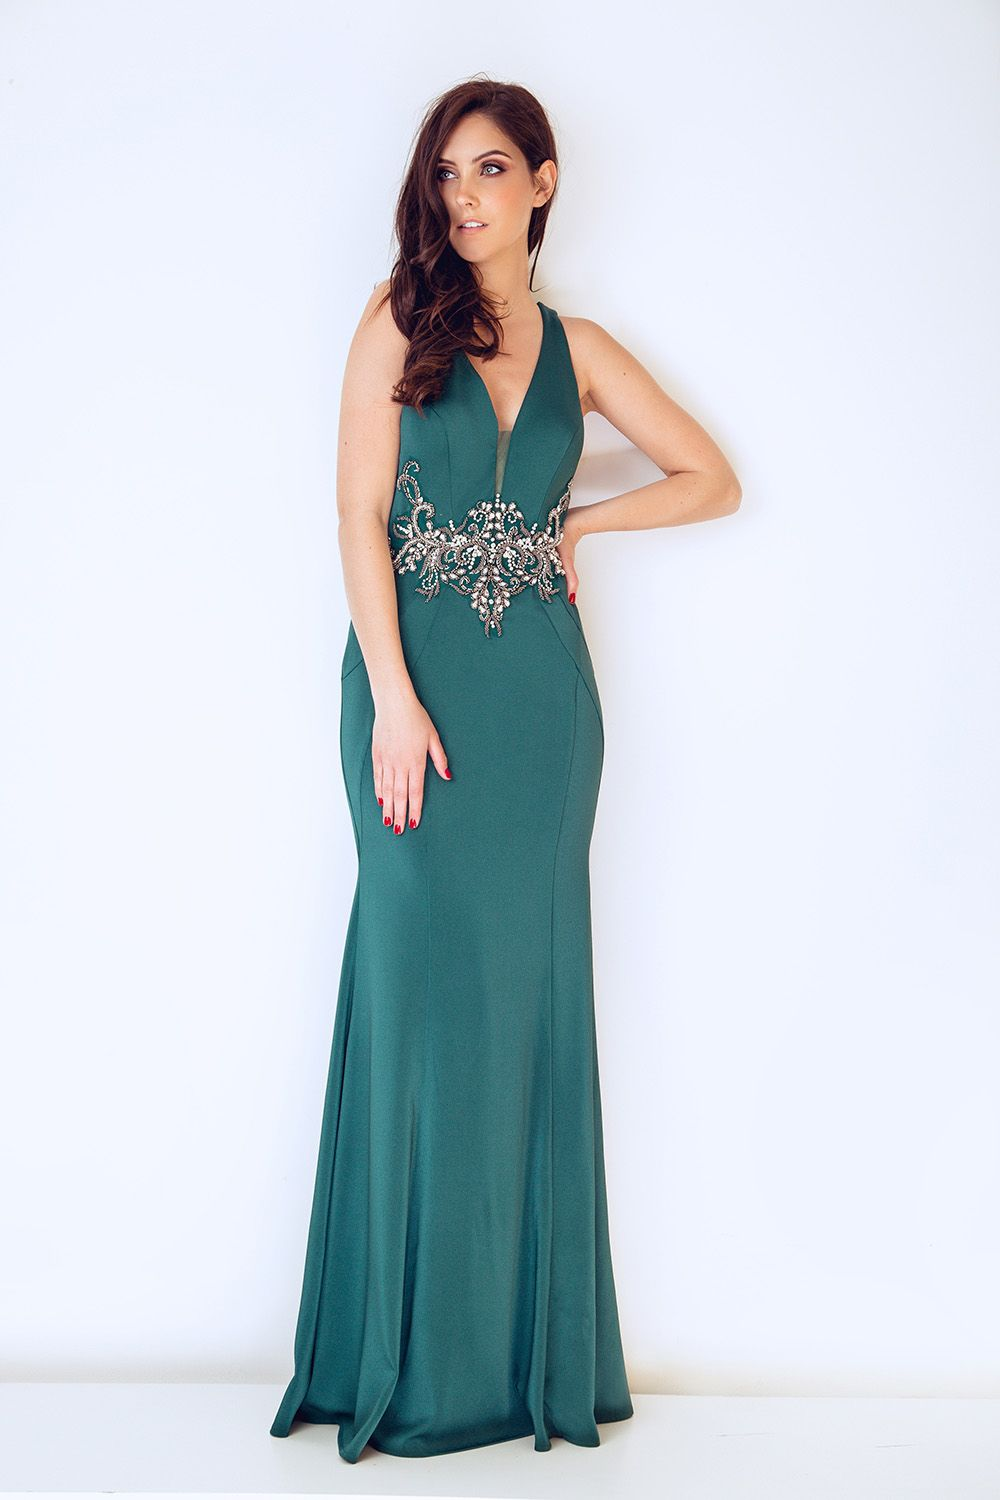 Dynasty London dress, teal green evening gown, evening dress, 2018 ...